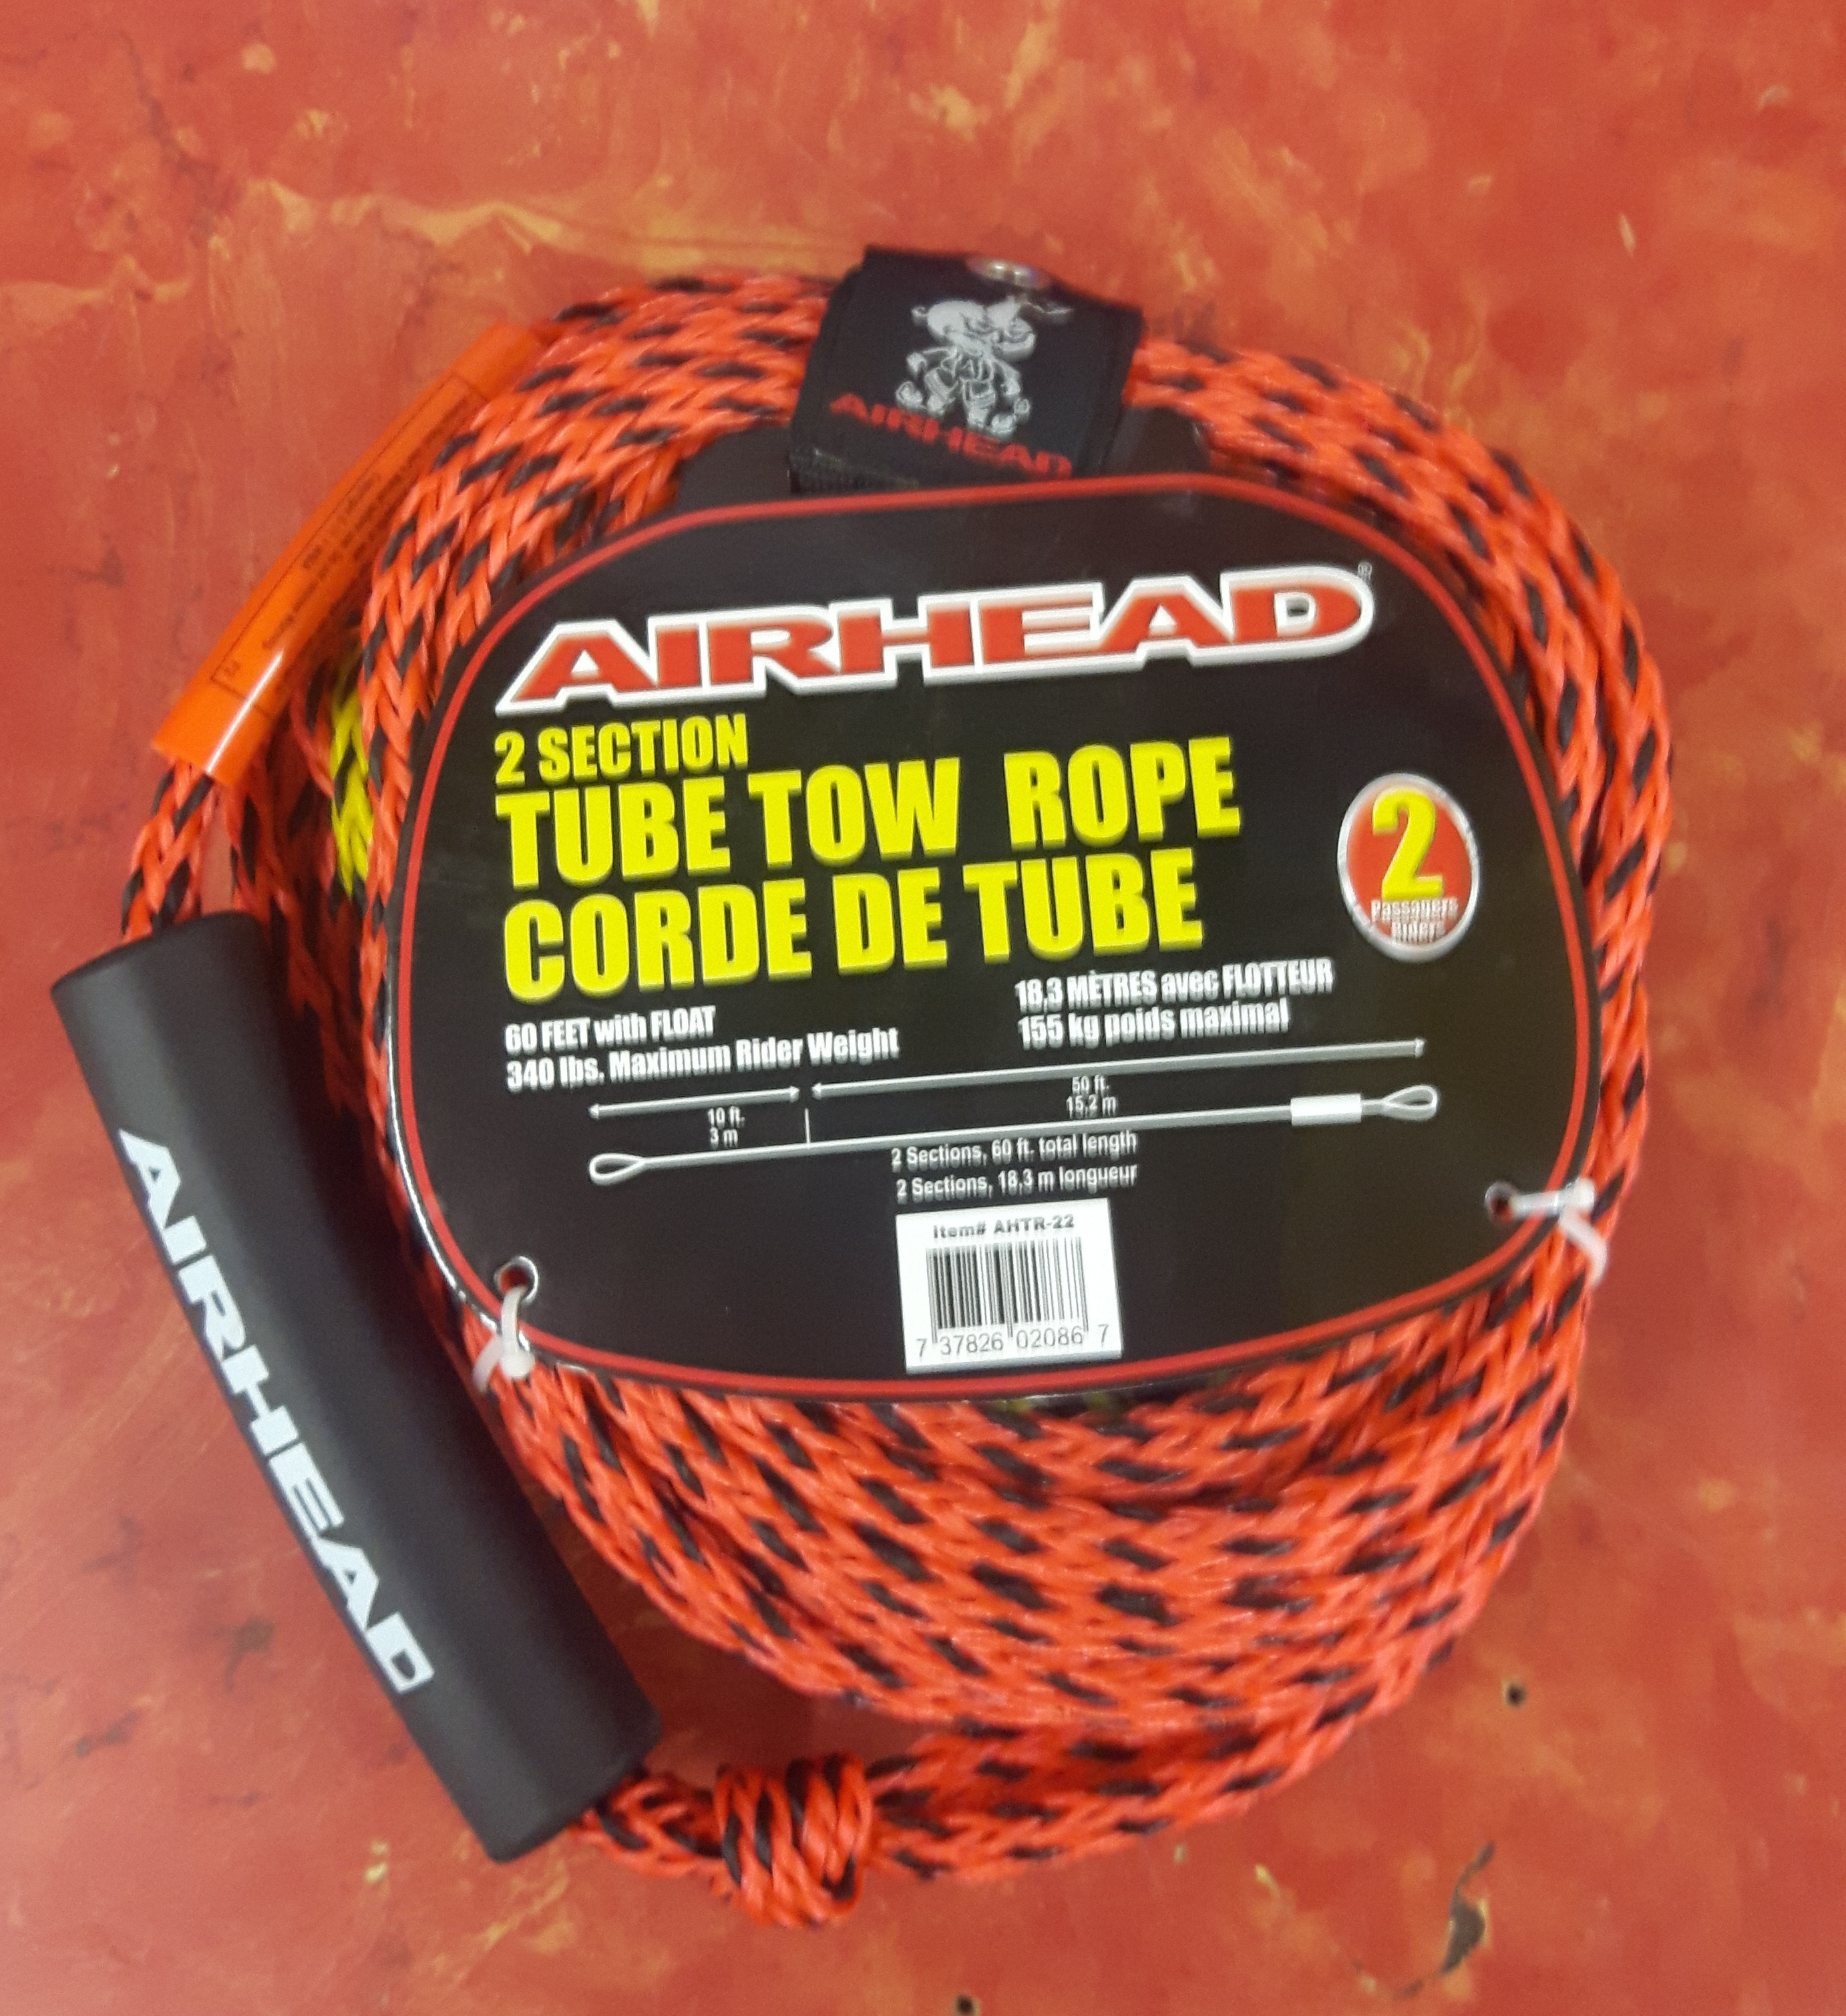 AIRHEAD - TUBE TOW ROPE - WATER TUBE SPORTING EQUIPMENT ROPE